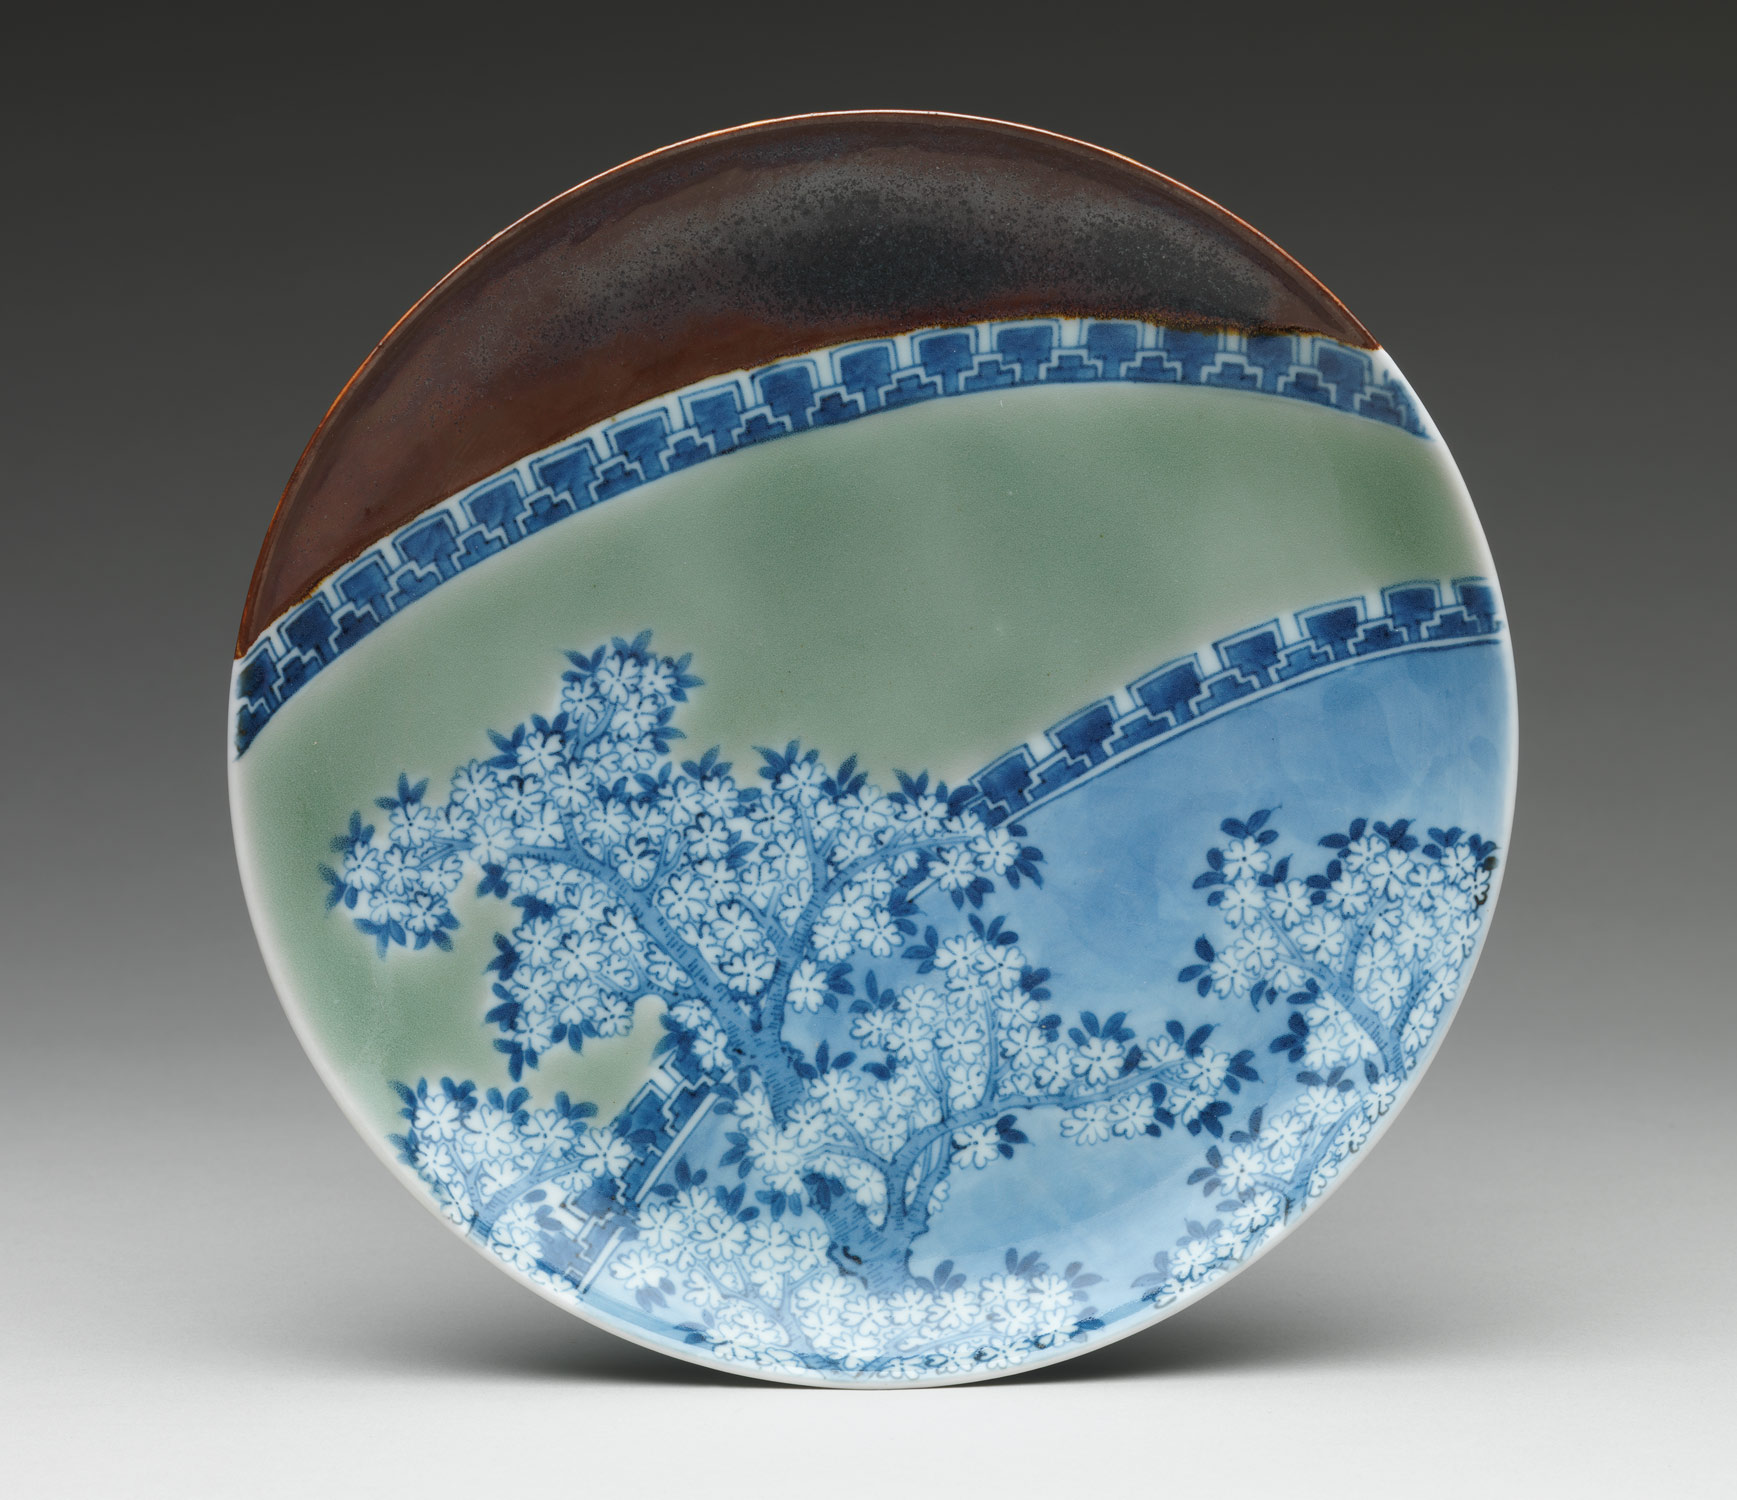 ... Dish with Cherry Blossoms and Textile Curtains ... & Edo-Period Japanese Porcelain | Essay | Heilbrunn Timeline of Art ...